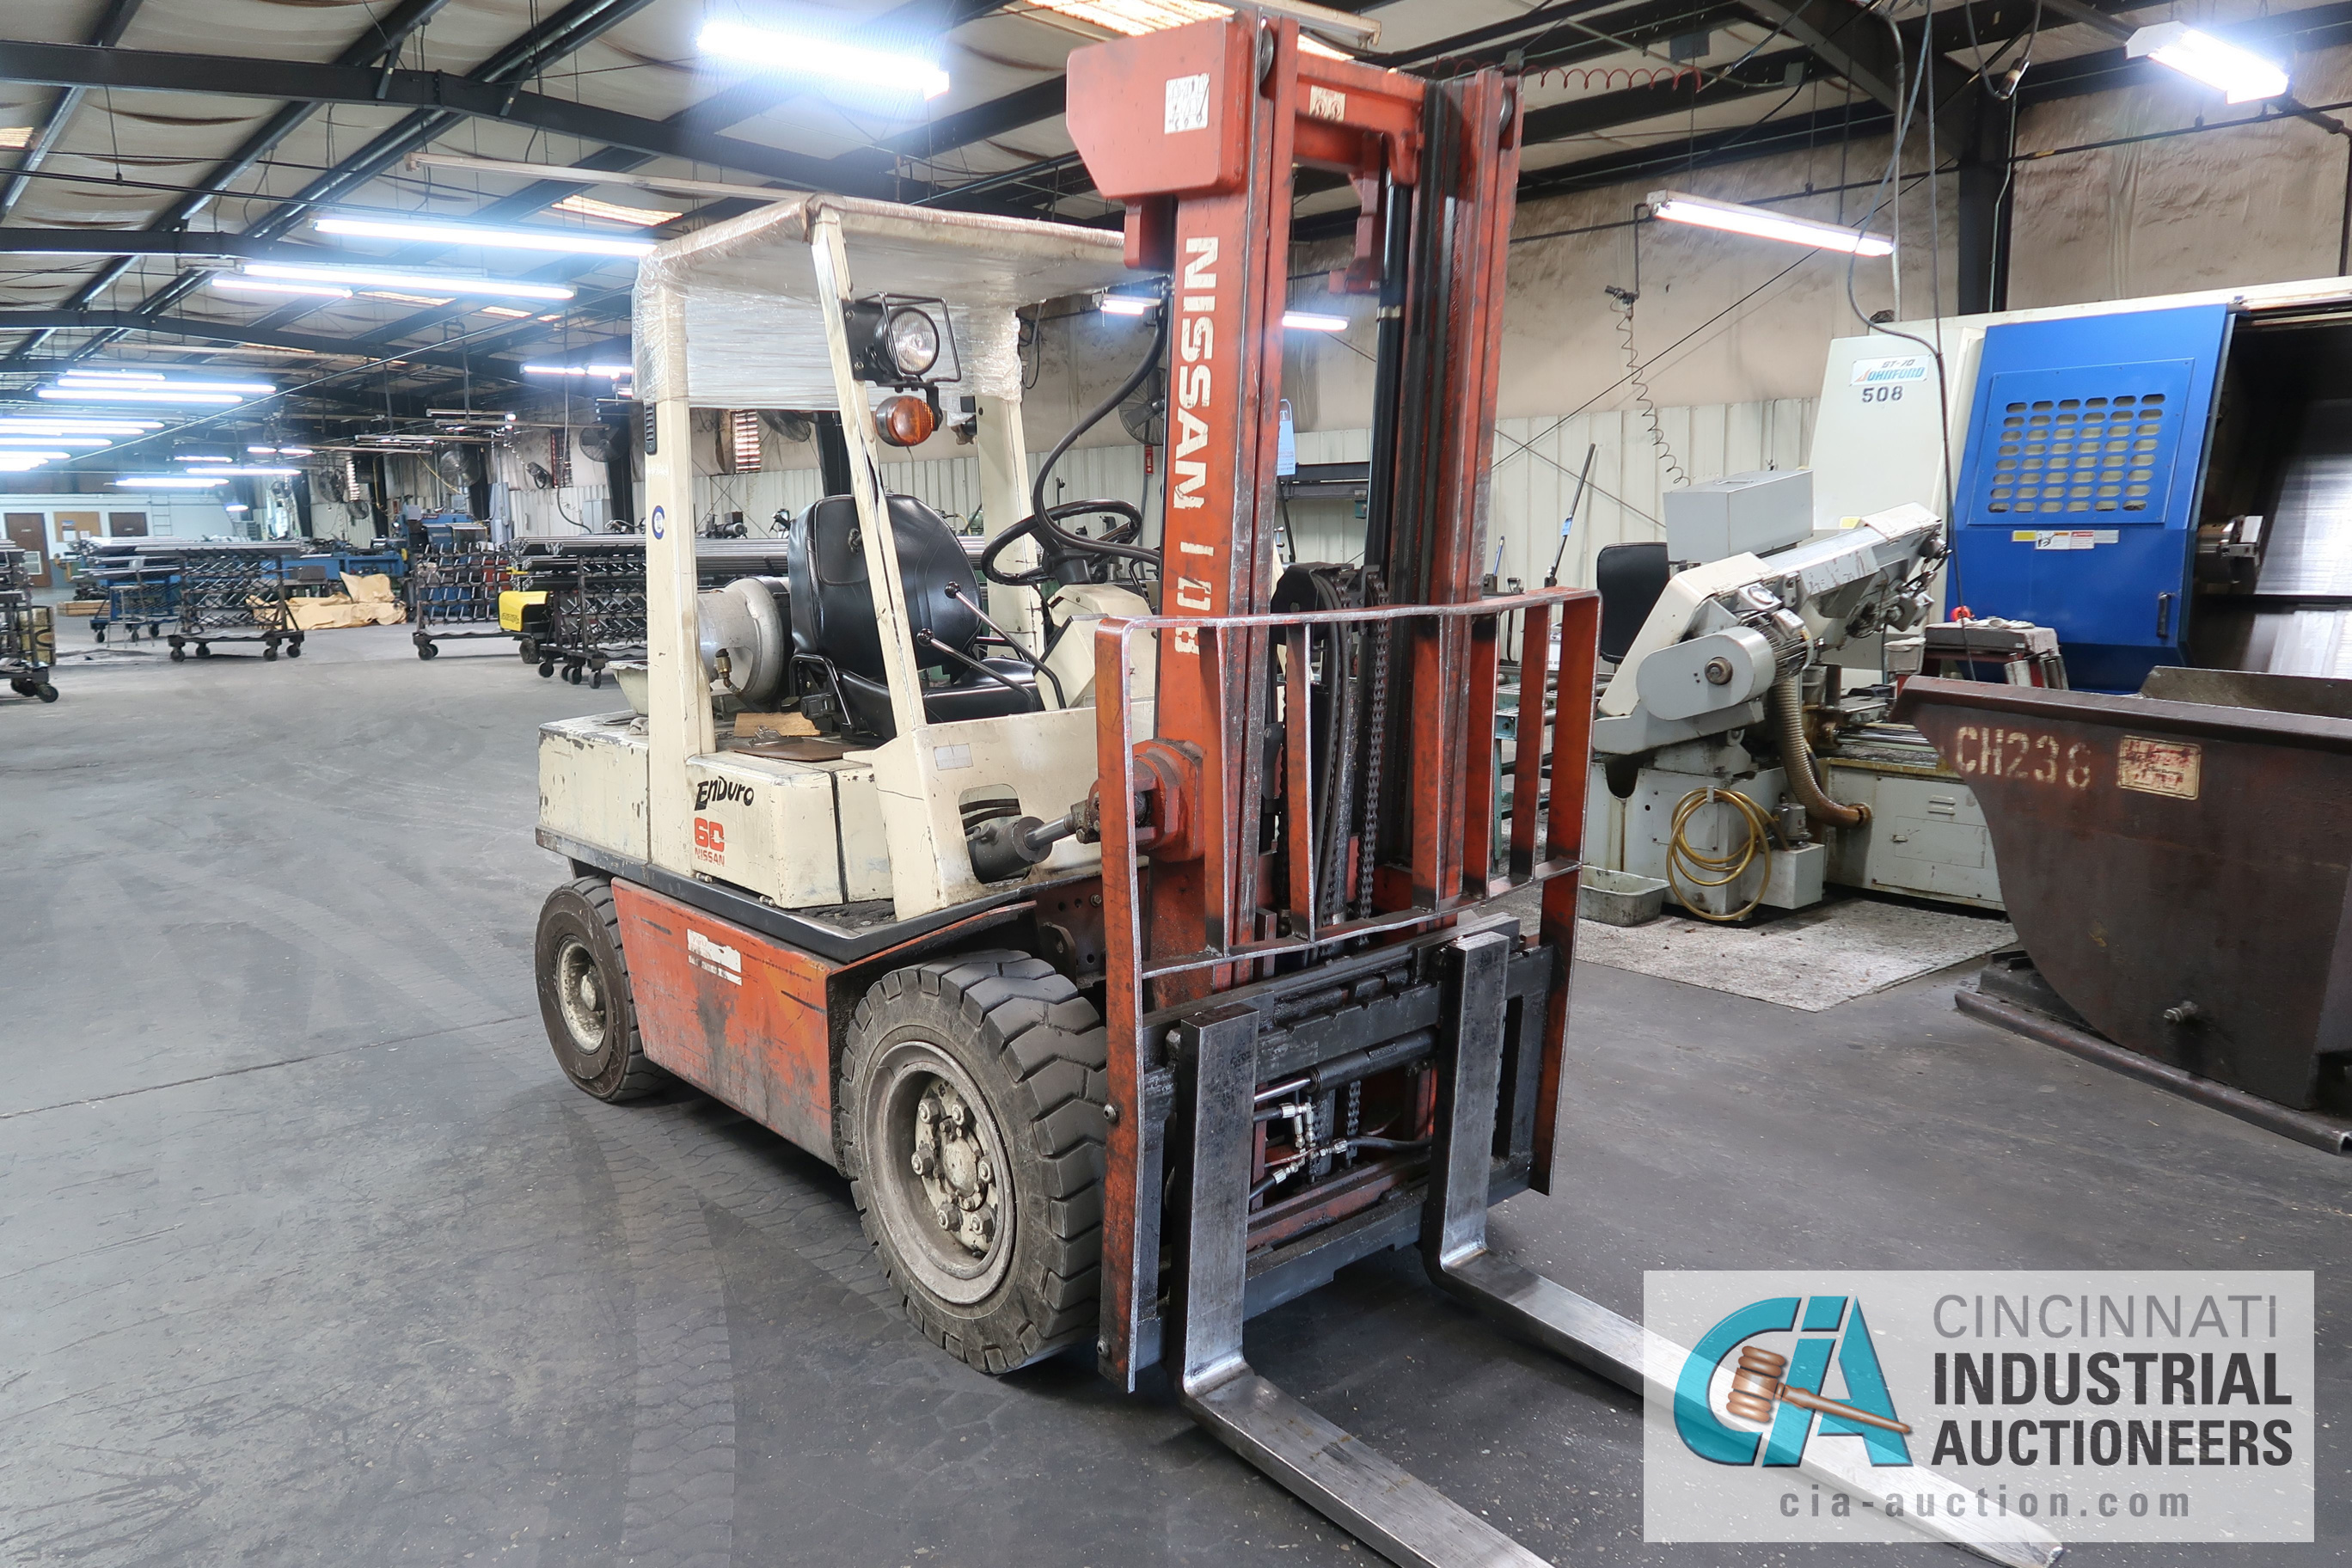 6,000 LB. CAPACITY NISSAN MODEL KUGH02A30V LP GAS, TWO STAGE MAST, SOLID PNEUMATIC TIRE LIFT - Image 2 of 14